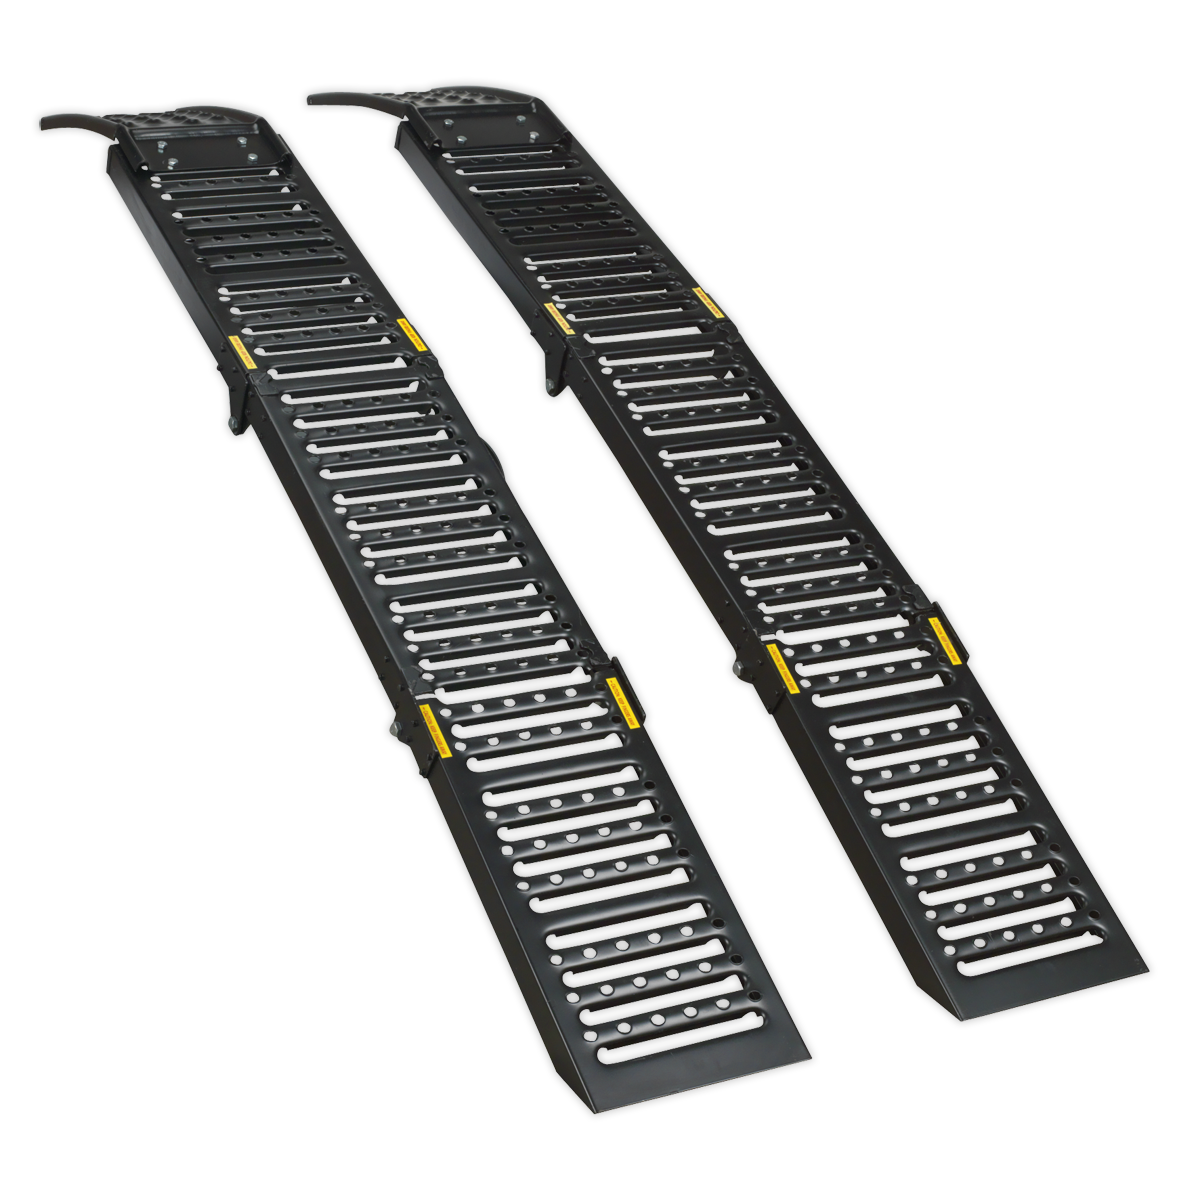 Steel Folding Loading Ramps 500kg Capacity per Pair   SEALEY FCR500 by Sealey